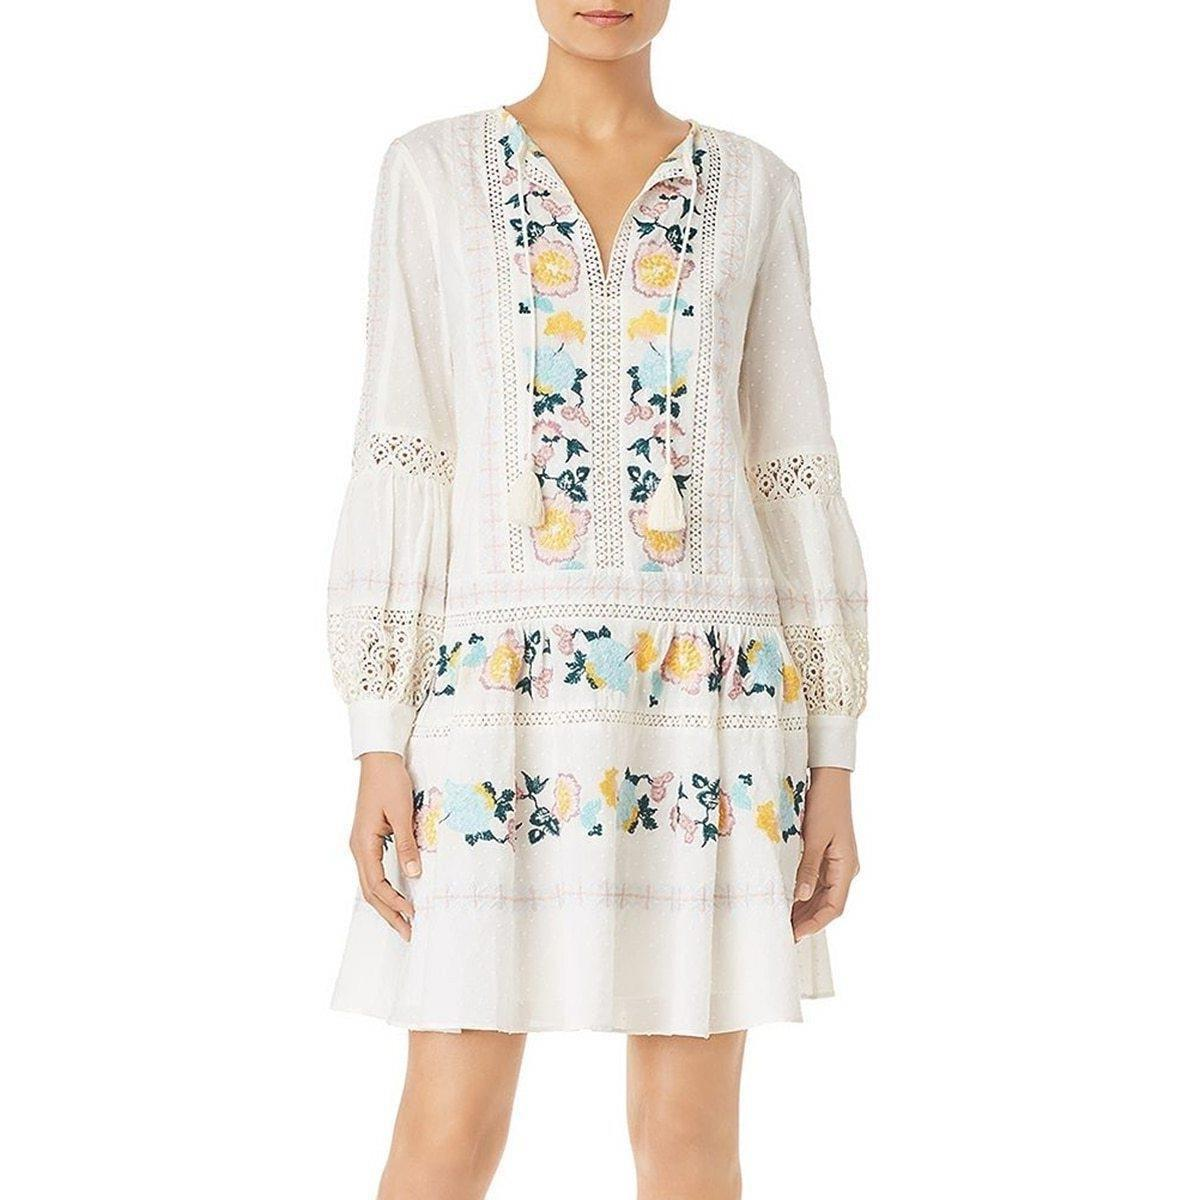 Hippie Dress Chic White 2019